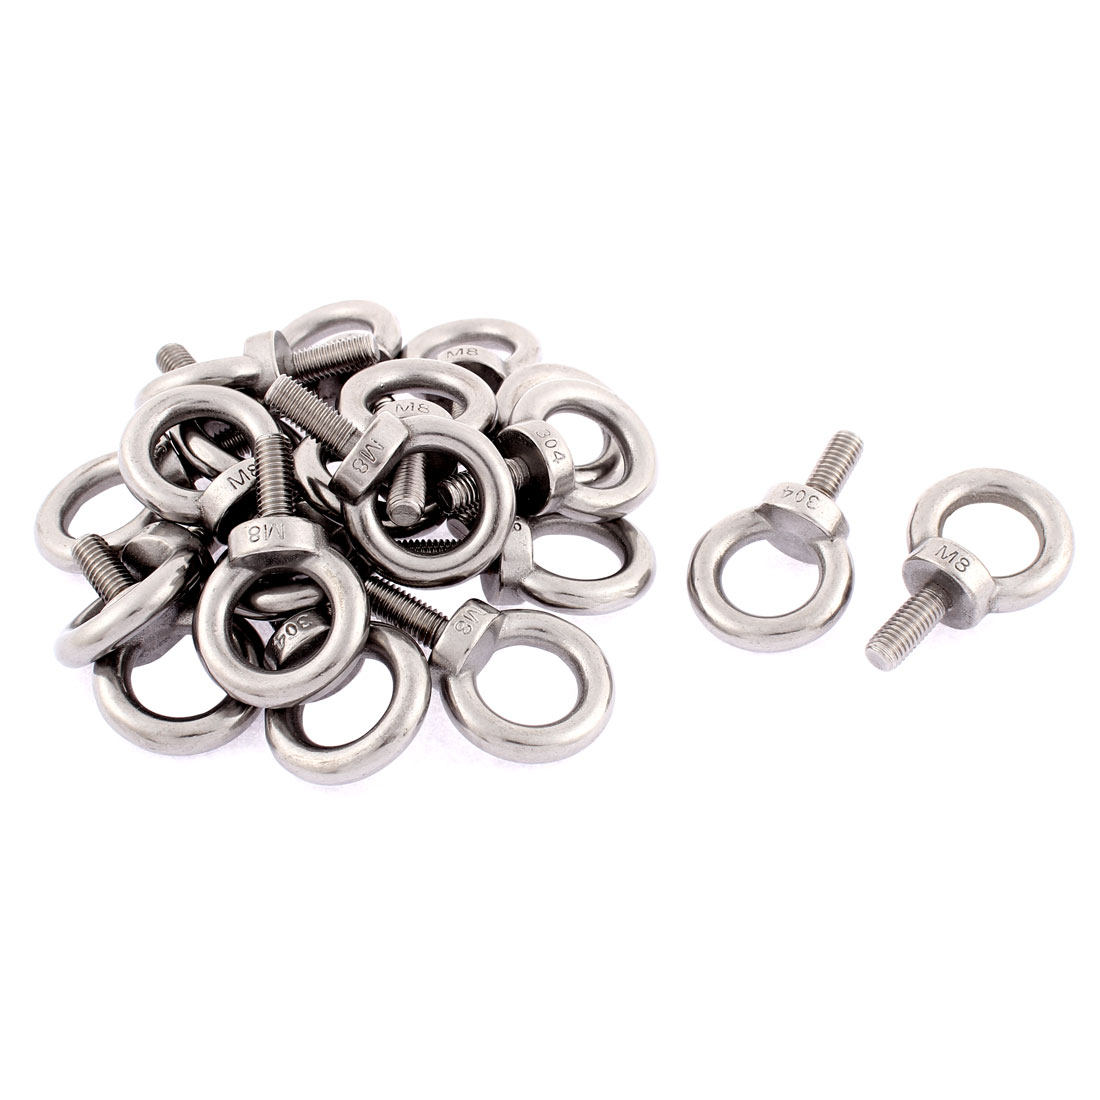 Machinery Shoulder Lifting Eye Bolts Ring M8 x 20mm Male Thread 20pcs